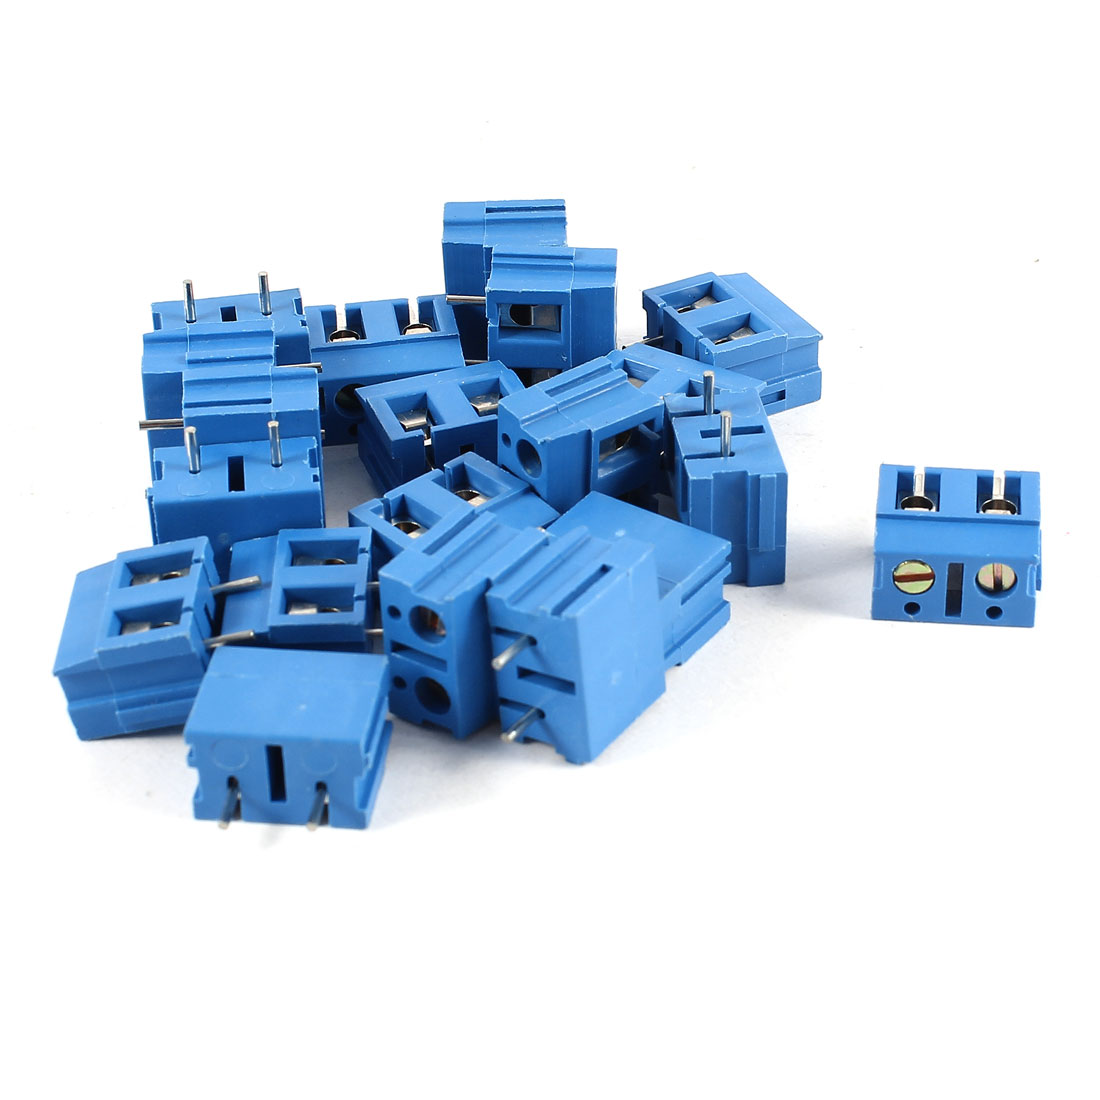 20 Pcs Blue KF370-2P 2 Position 7.5mm Pitch PCB Mount Screw Terminal Block Connectors 300V 16A